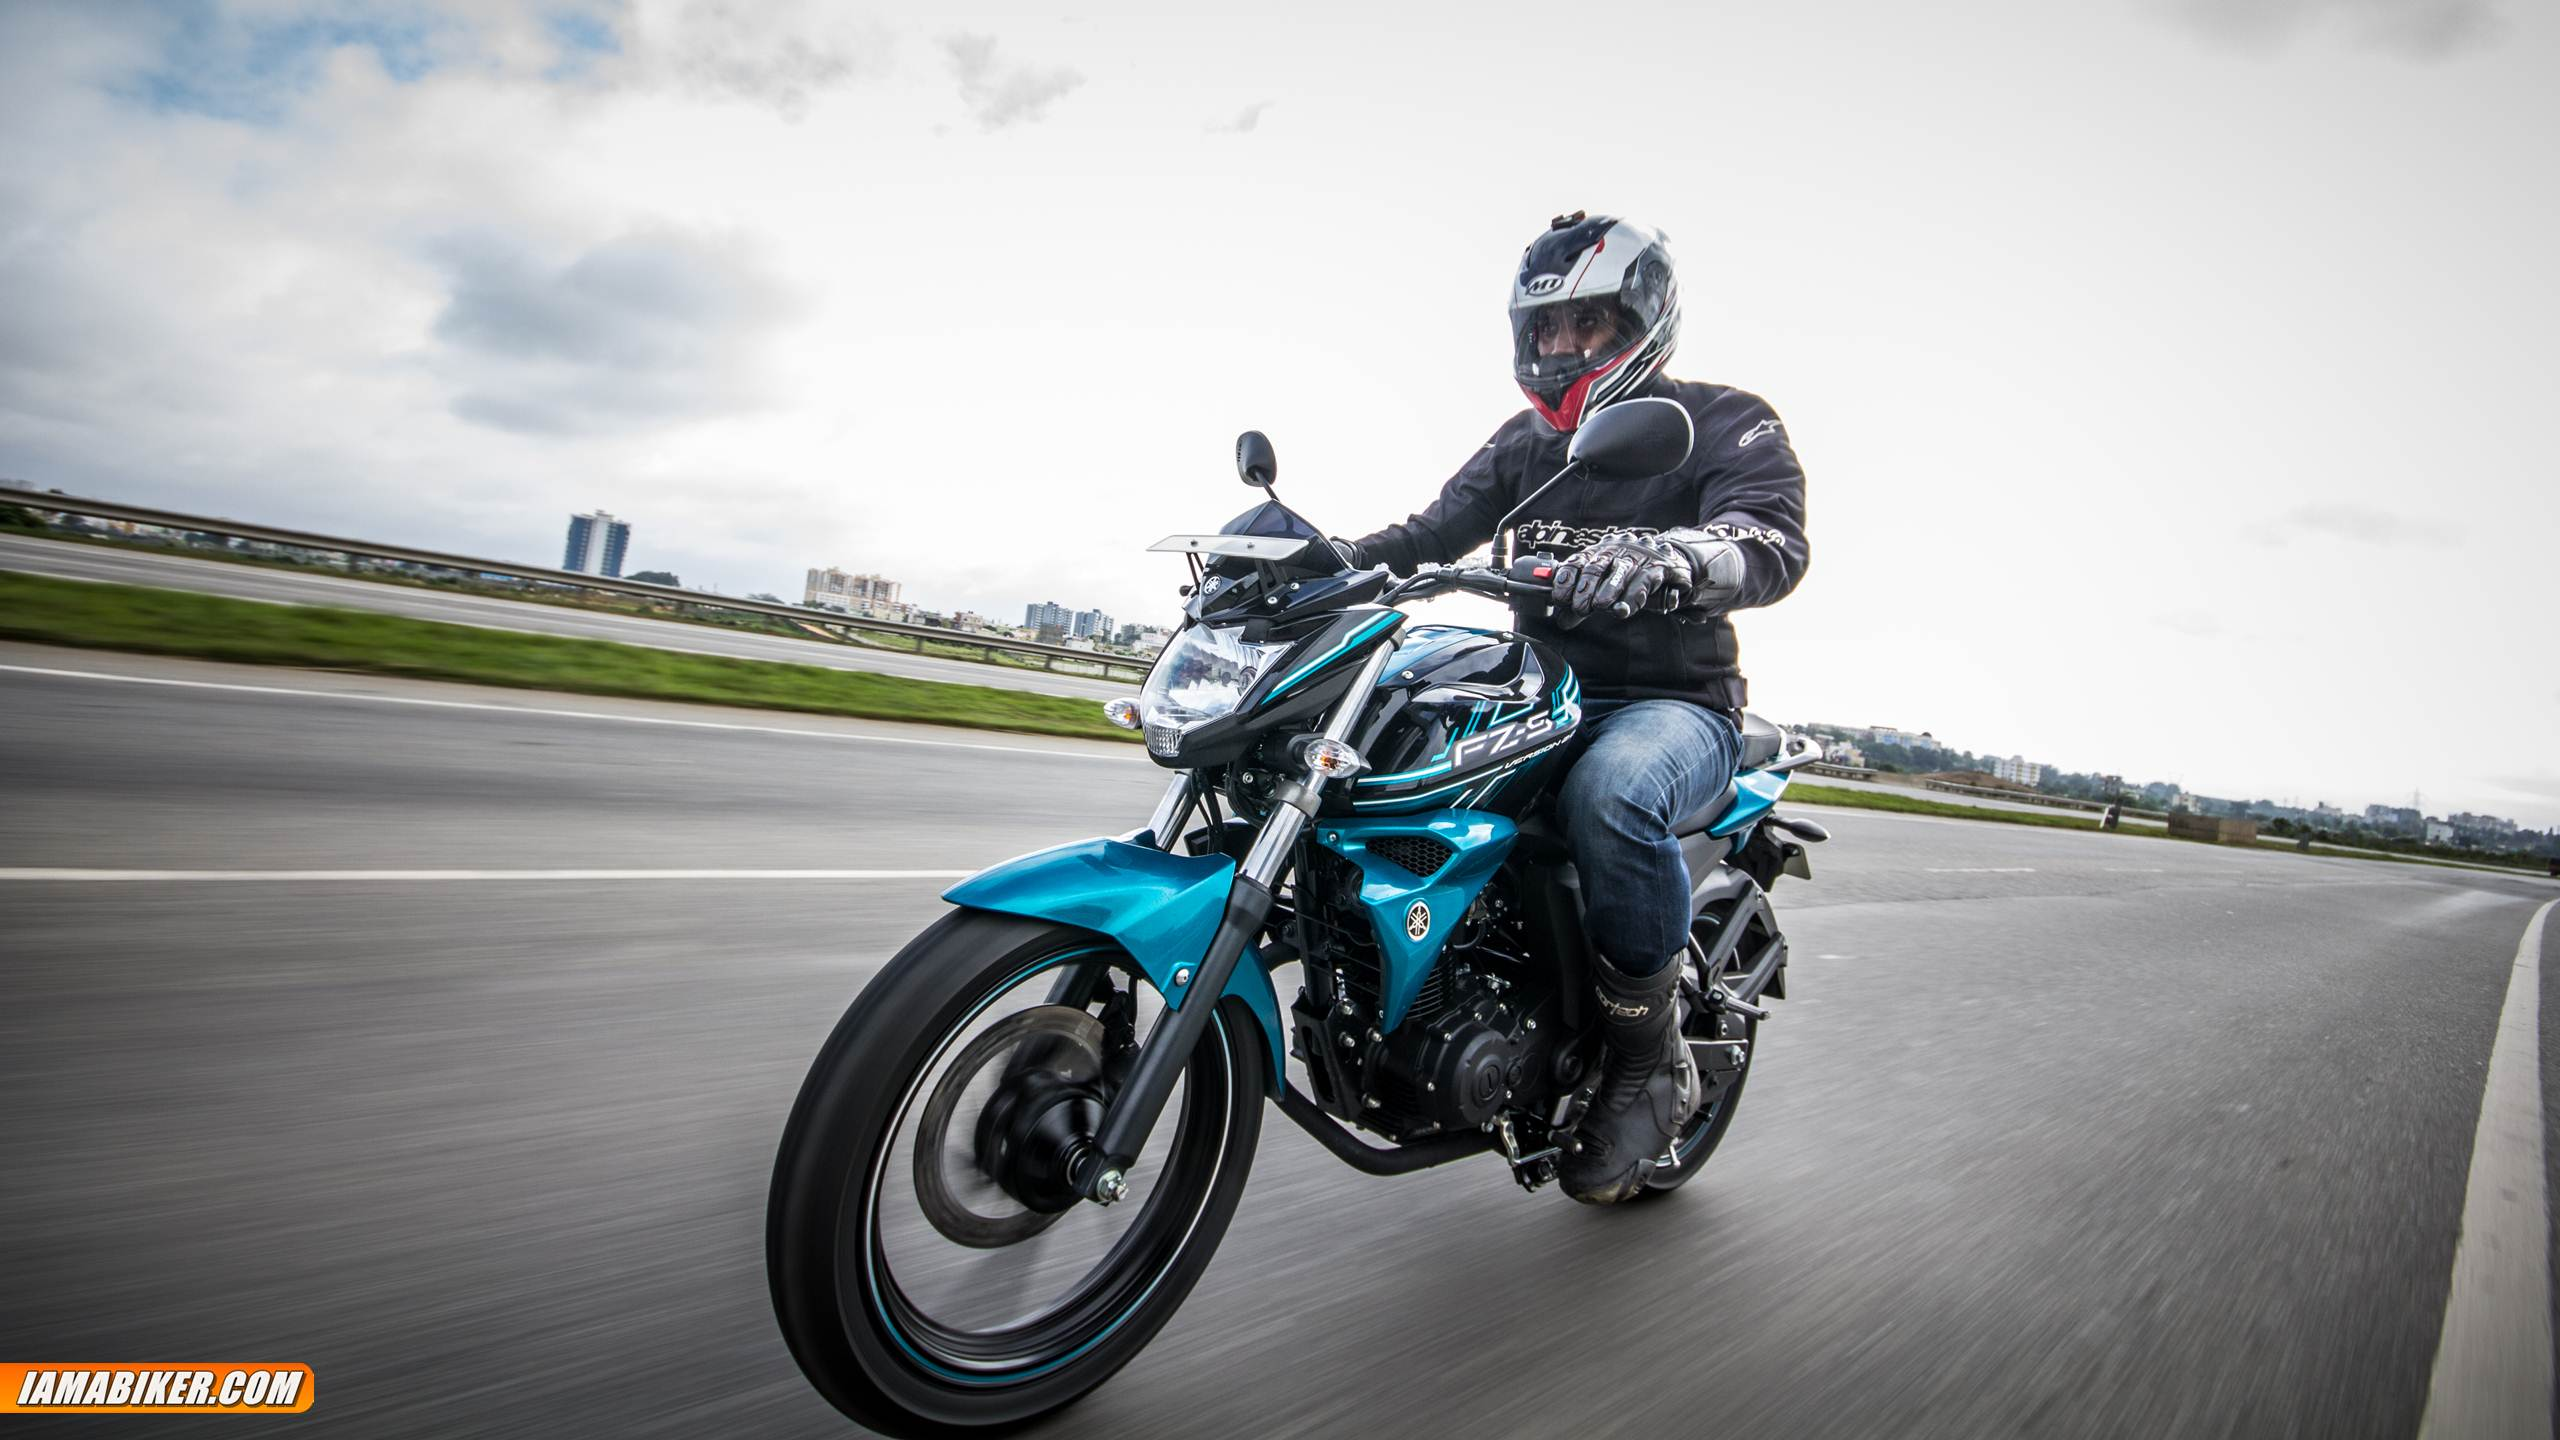 Yamaha FZ-S V2.0 review engine and performance